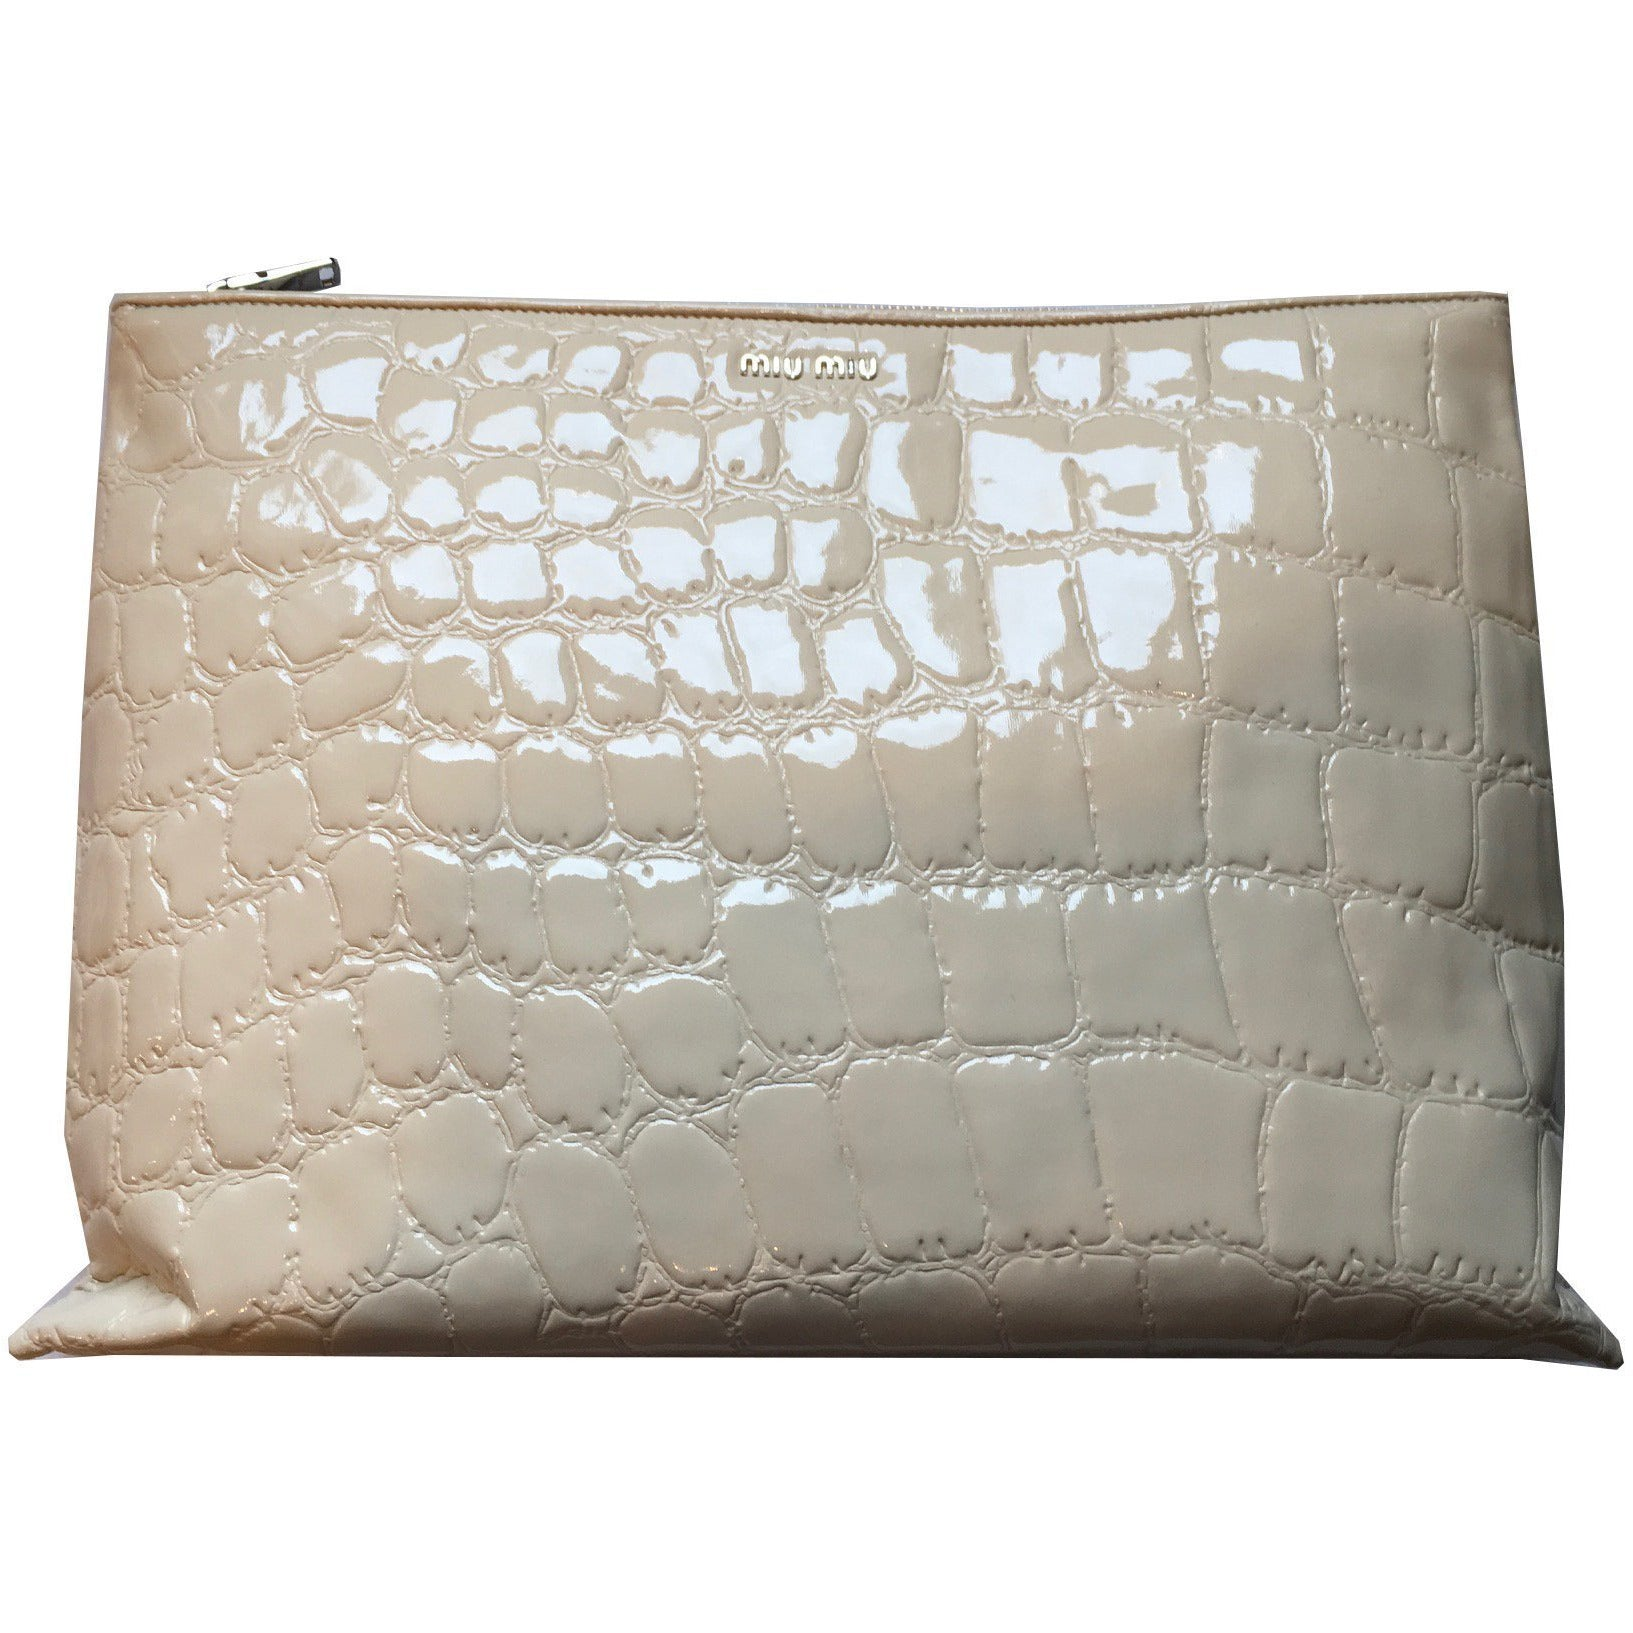 Miu Miu Classic Women's Beige Patent Leather Alligator Large Clutch Bag 5BF029